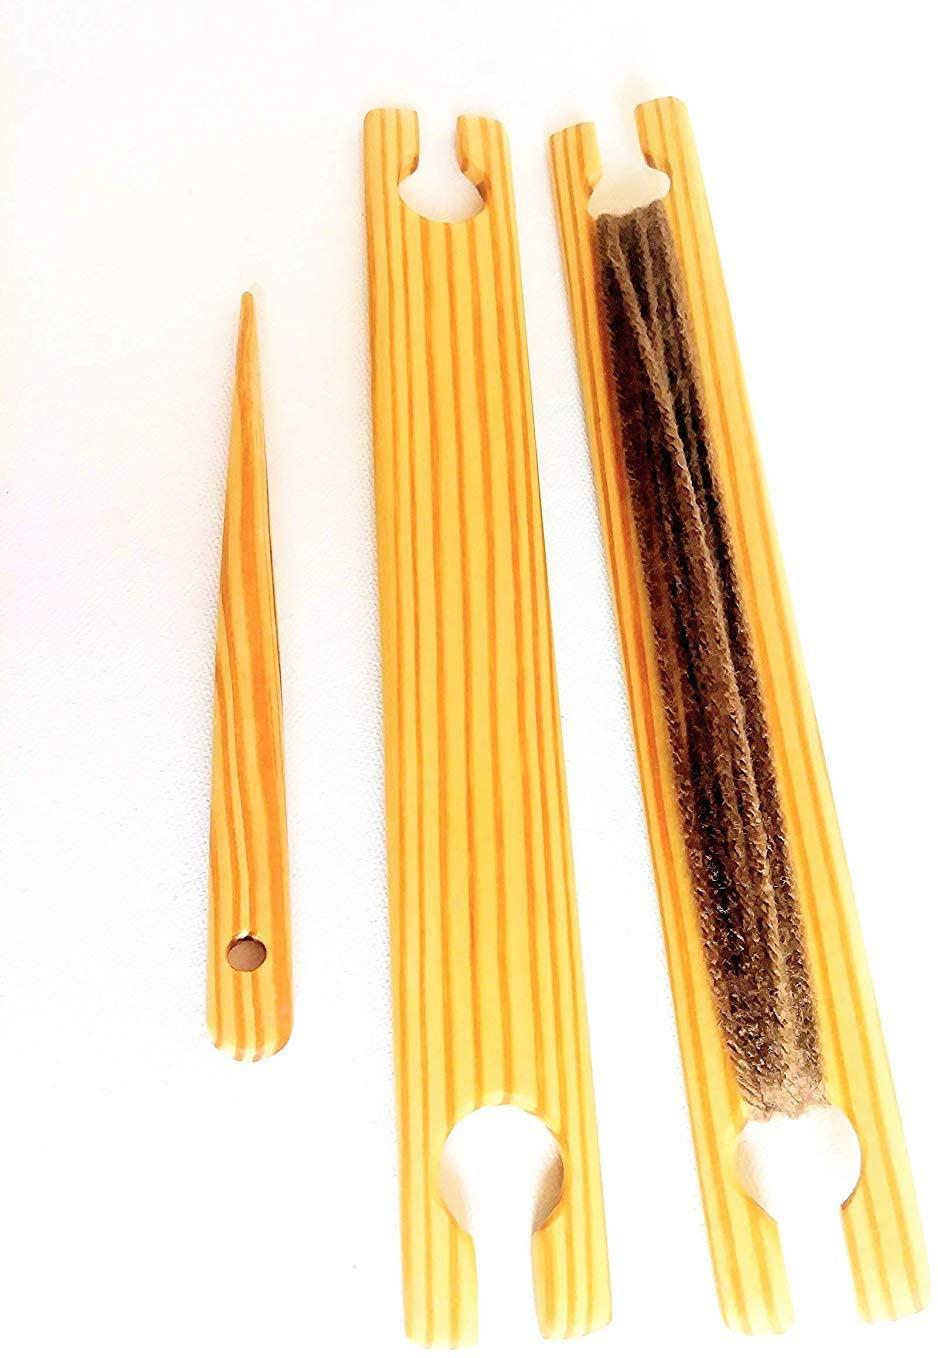 2 Pack of 8 Inch Weaving Stick Shuttles Free Weaving Needle 3 Tools Total